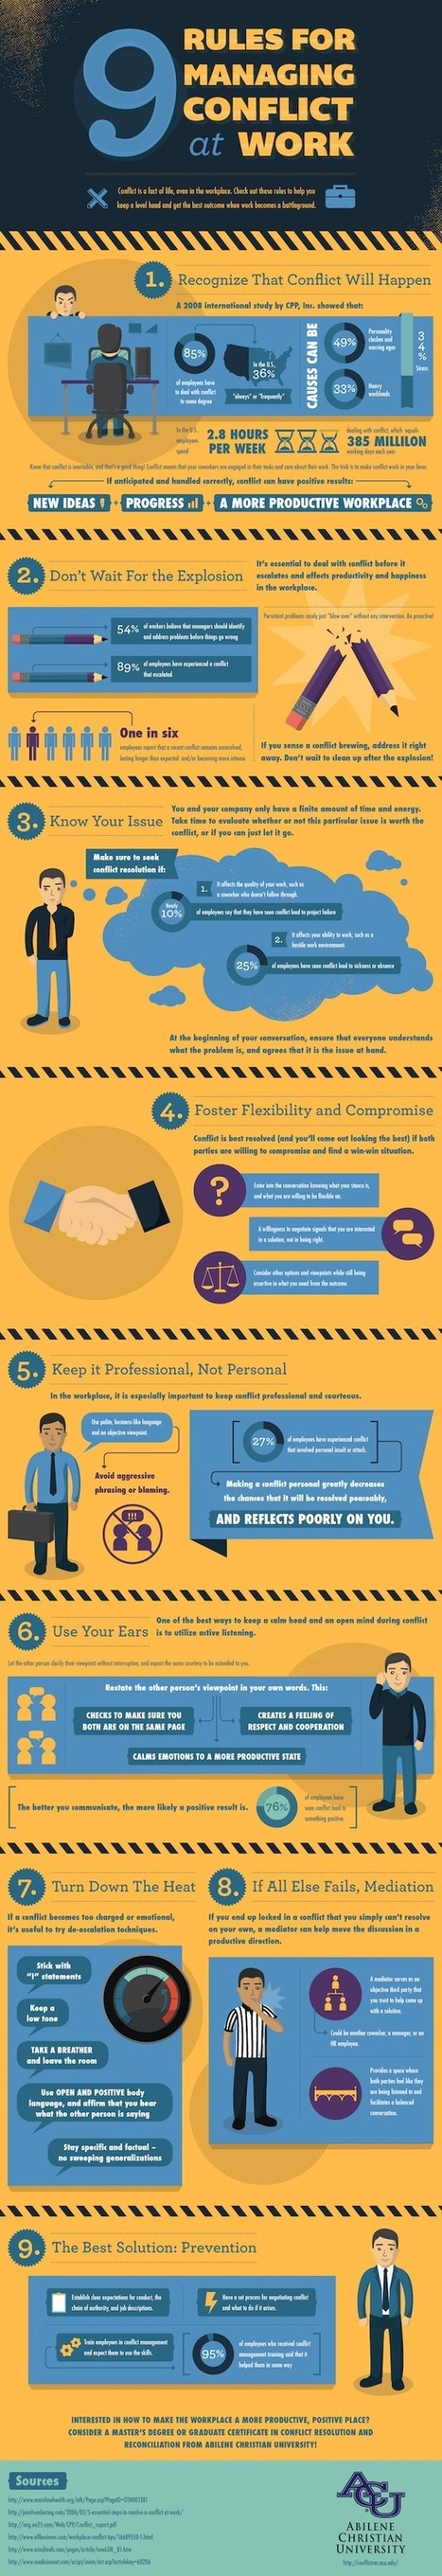 How to Manage Conflict at Work [INFOGRAPHIC] | Encountering Conflict | Scoop.it